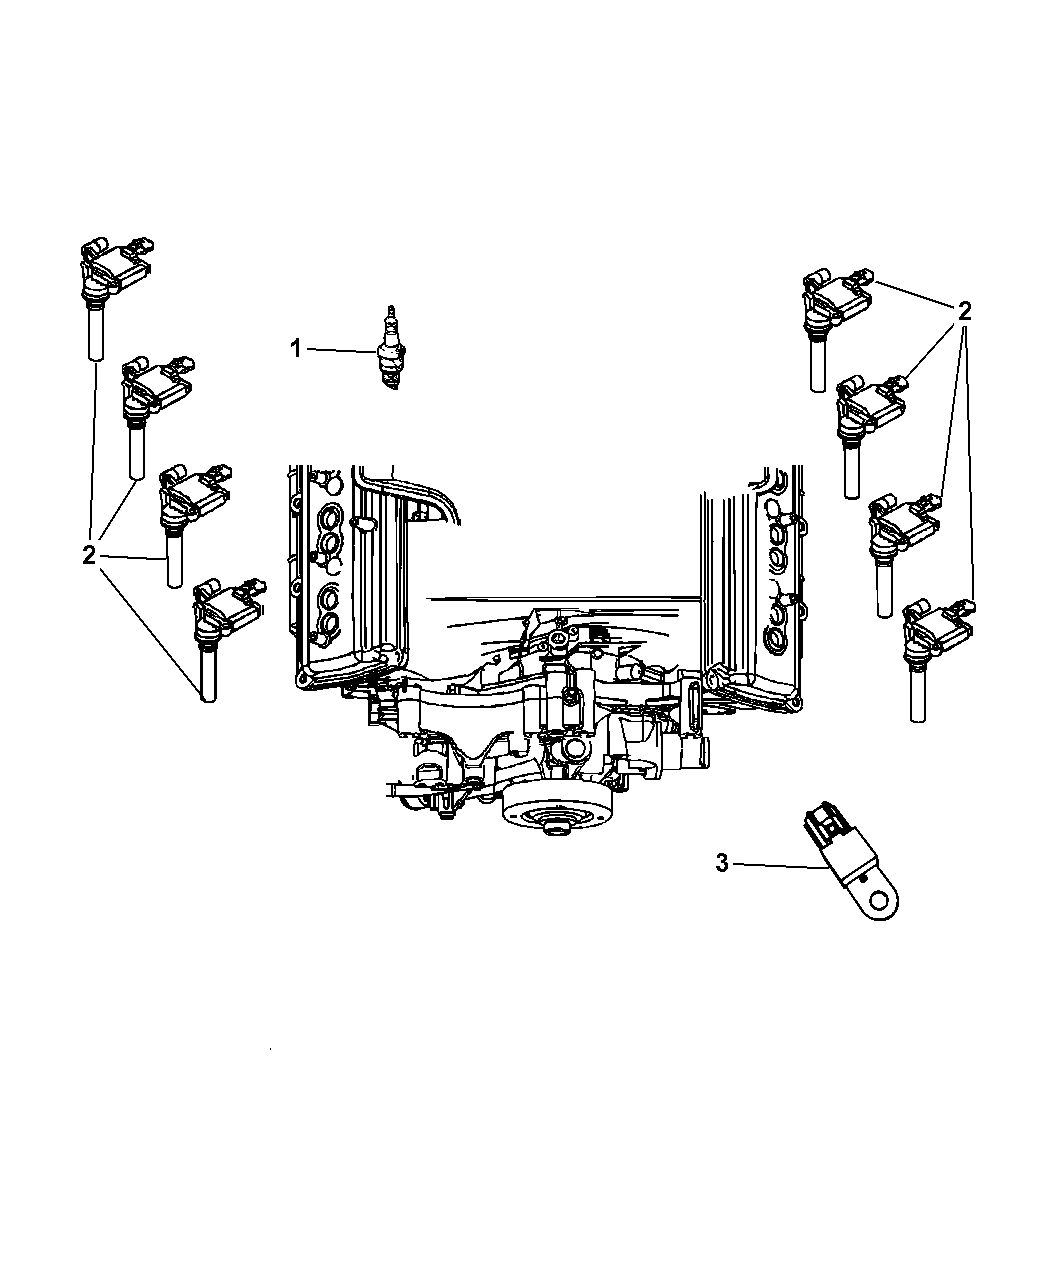 2015 cherokee hitch wiring diagram